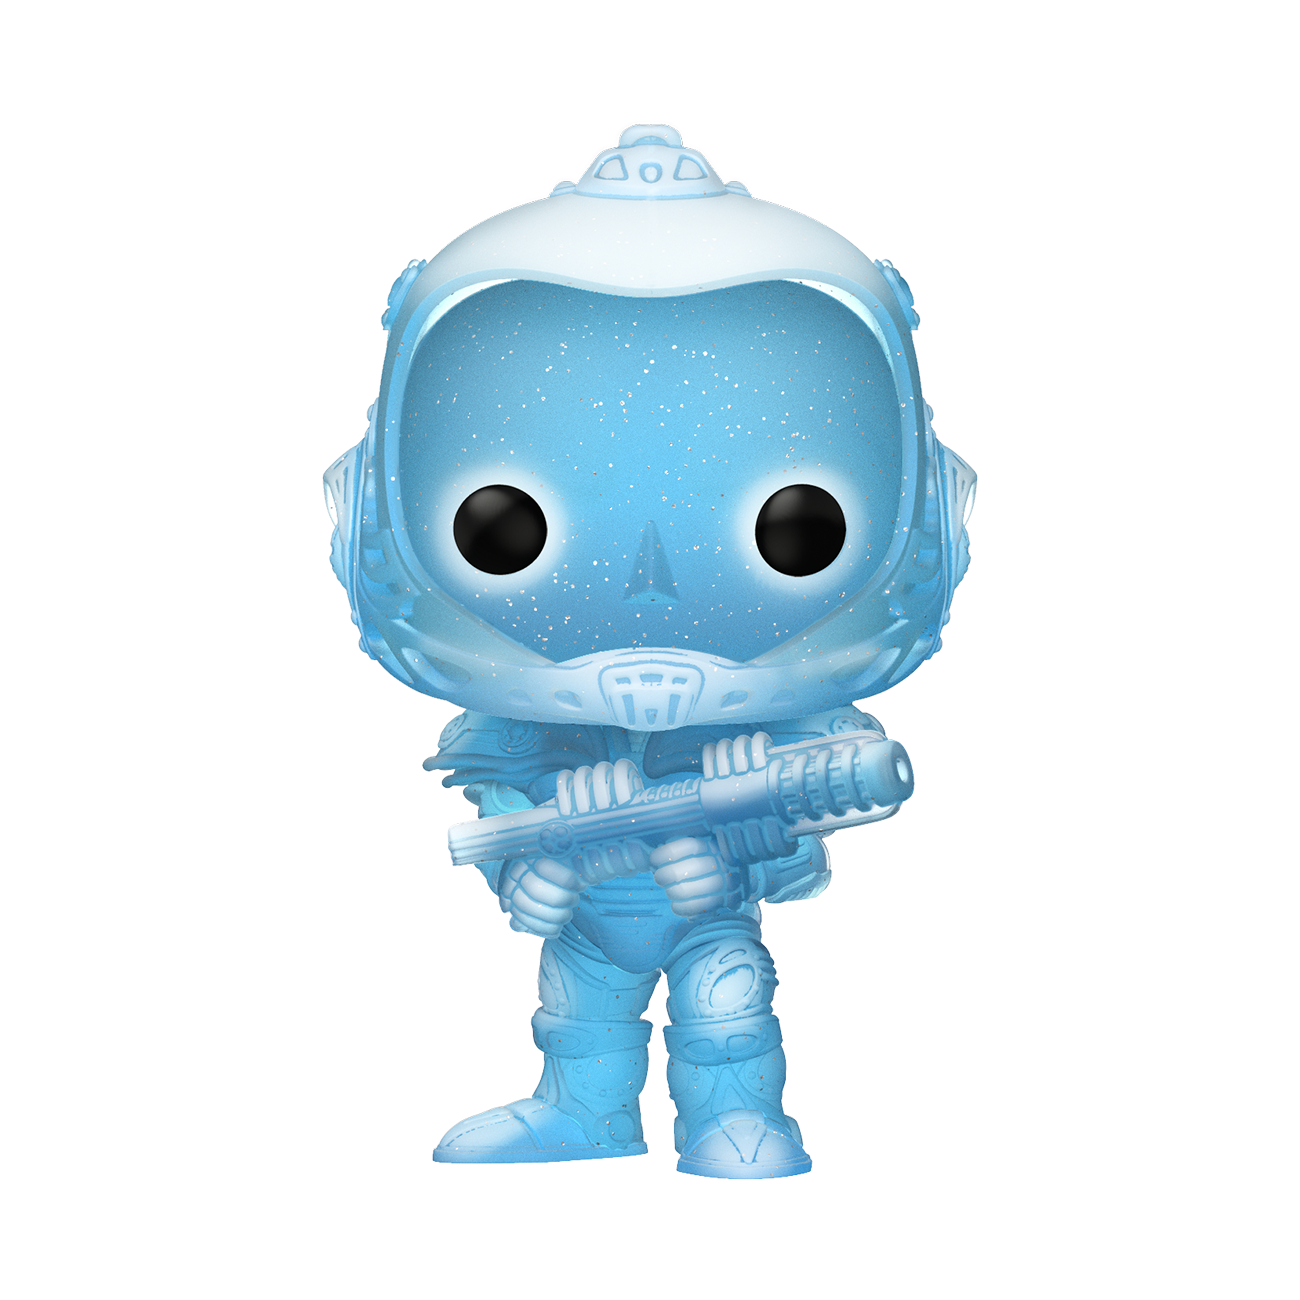 Batman and Robin - Mr Freeze Glittered Summer Convention 2020 Exclusive Pop! Vinyl Figure